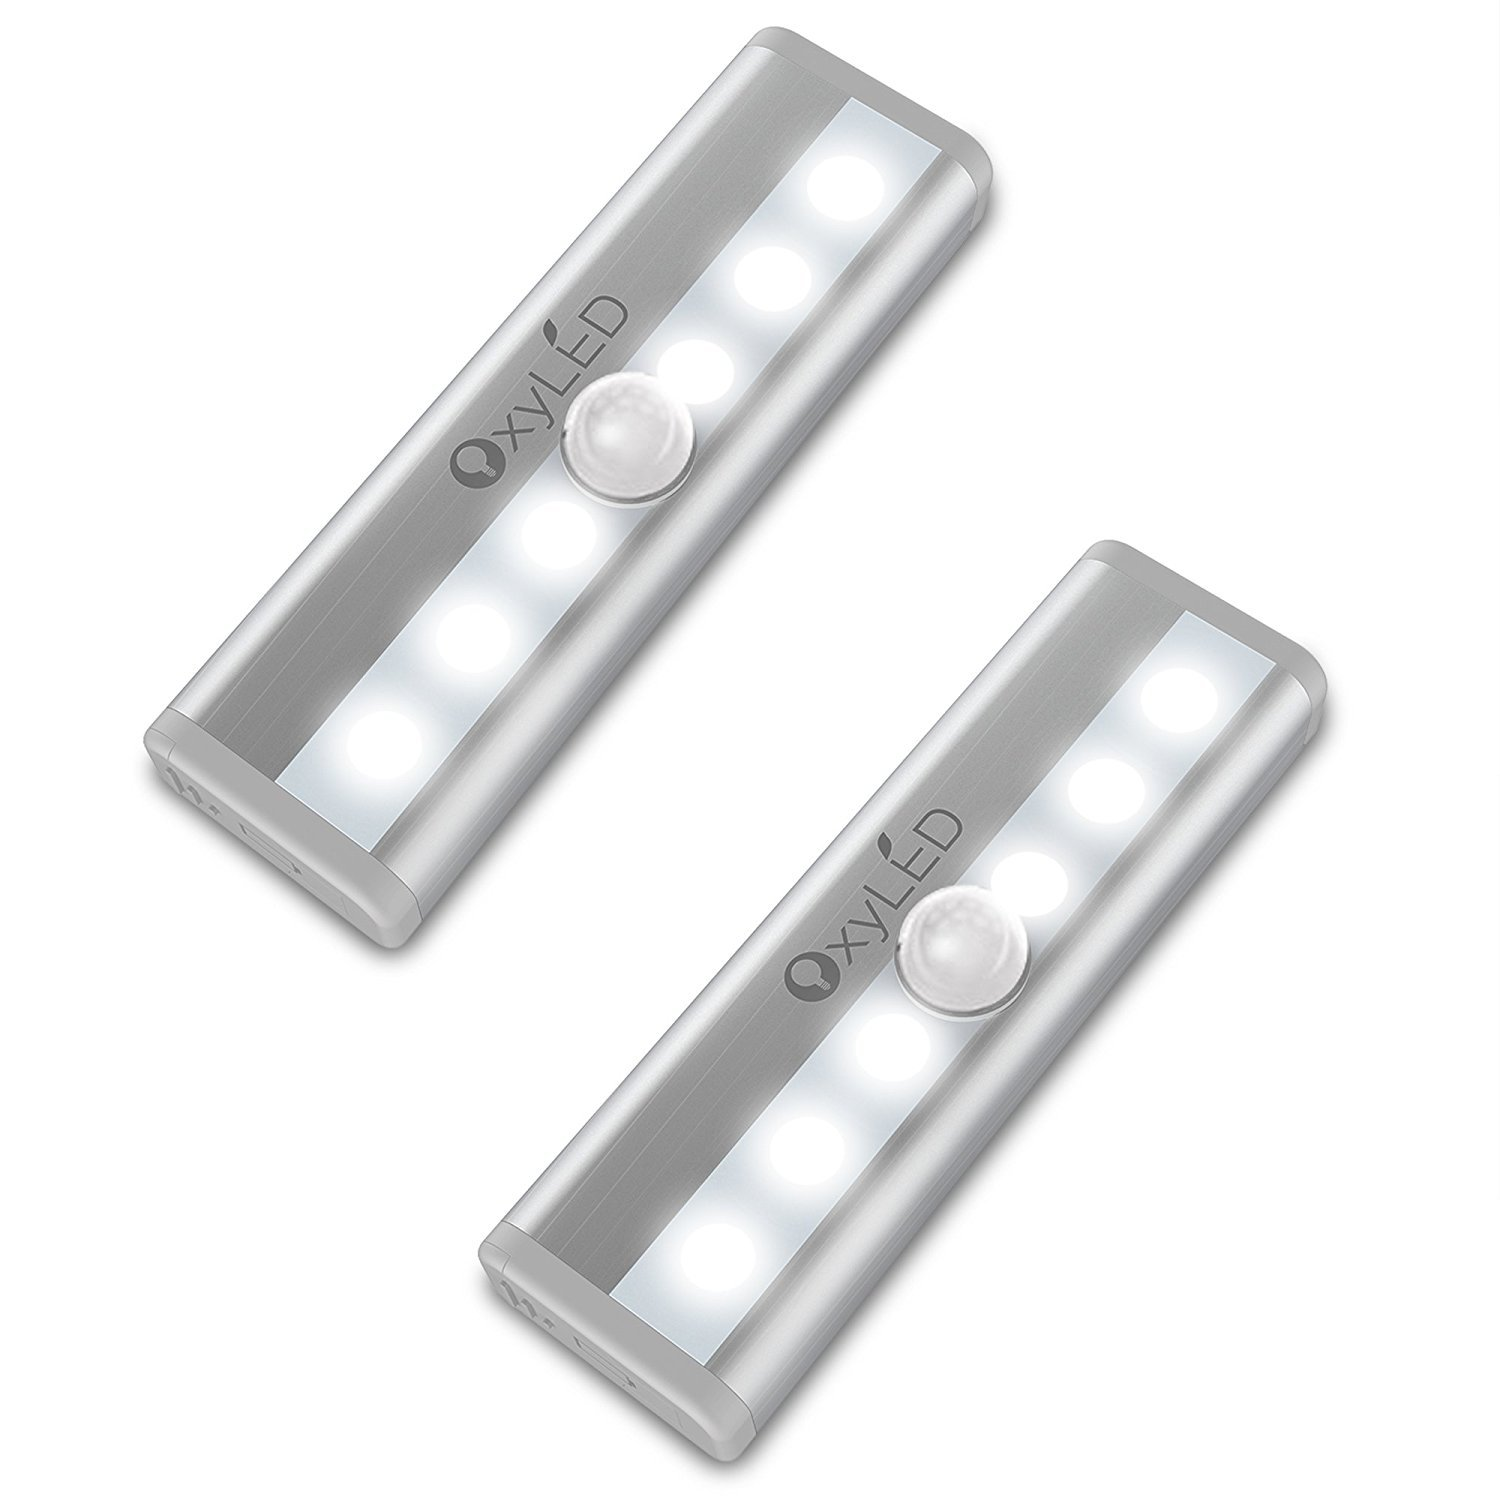 Mini Motion Sensor Lights, OxyLED 6 LED Night Light Bar for Closet Cabinet Wardrobe Ambry Cupboard Drawer Stairs Step, Stick-on Safe Lights Bed Light, 2 Pack, Battery Operated